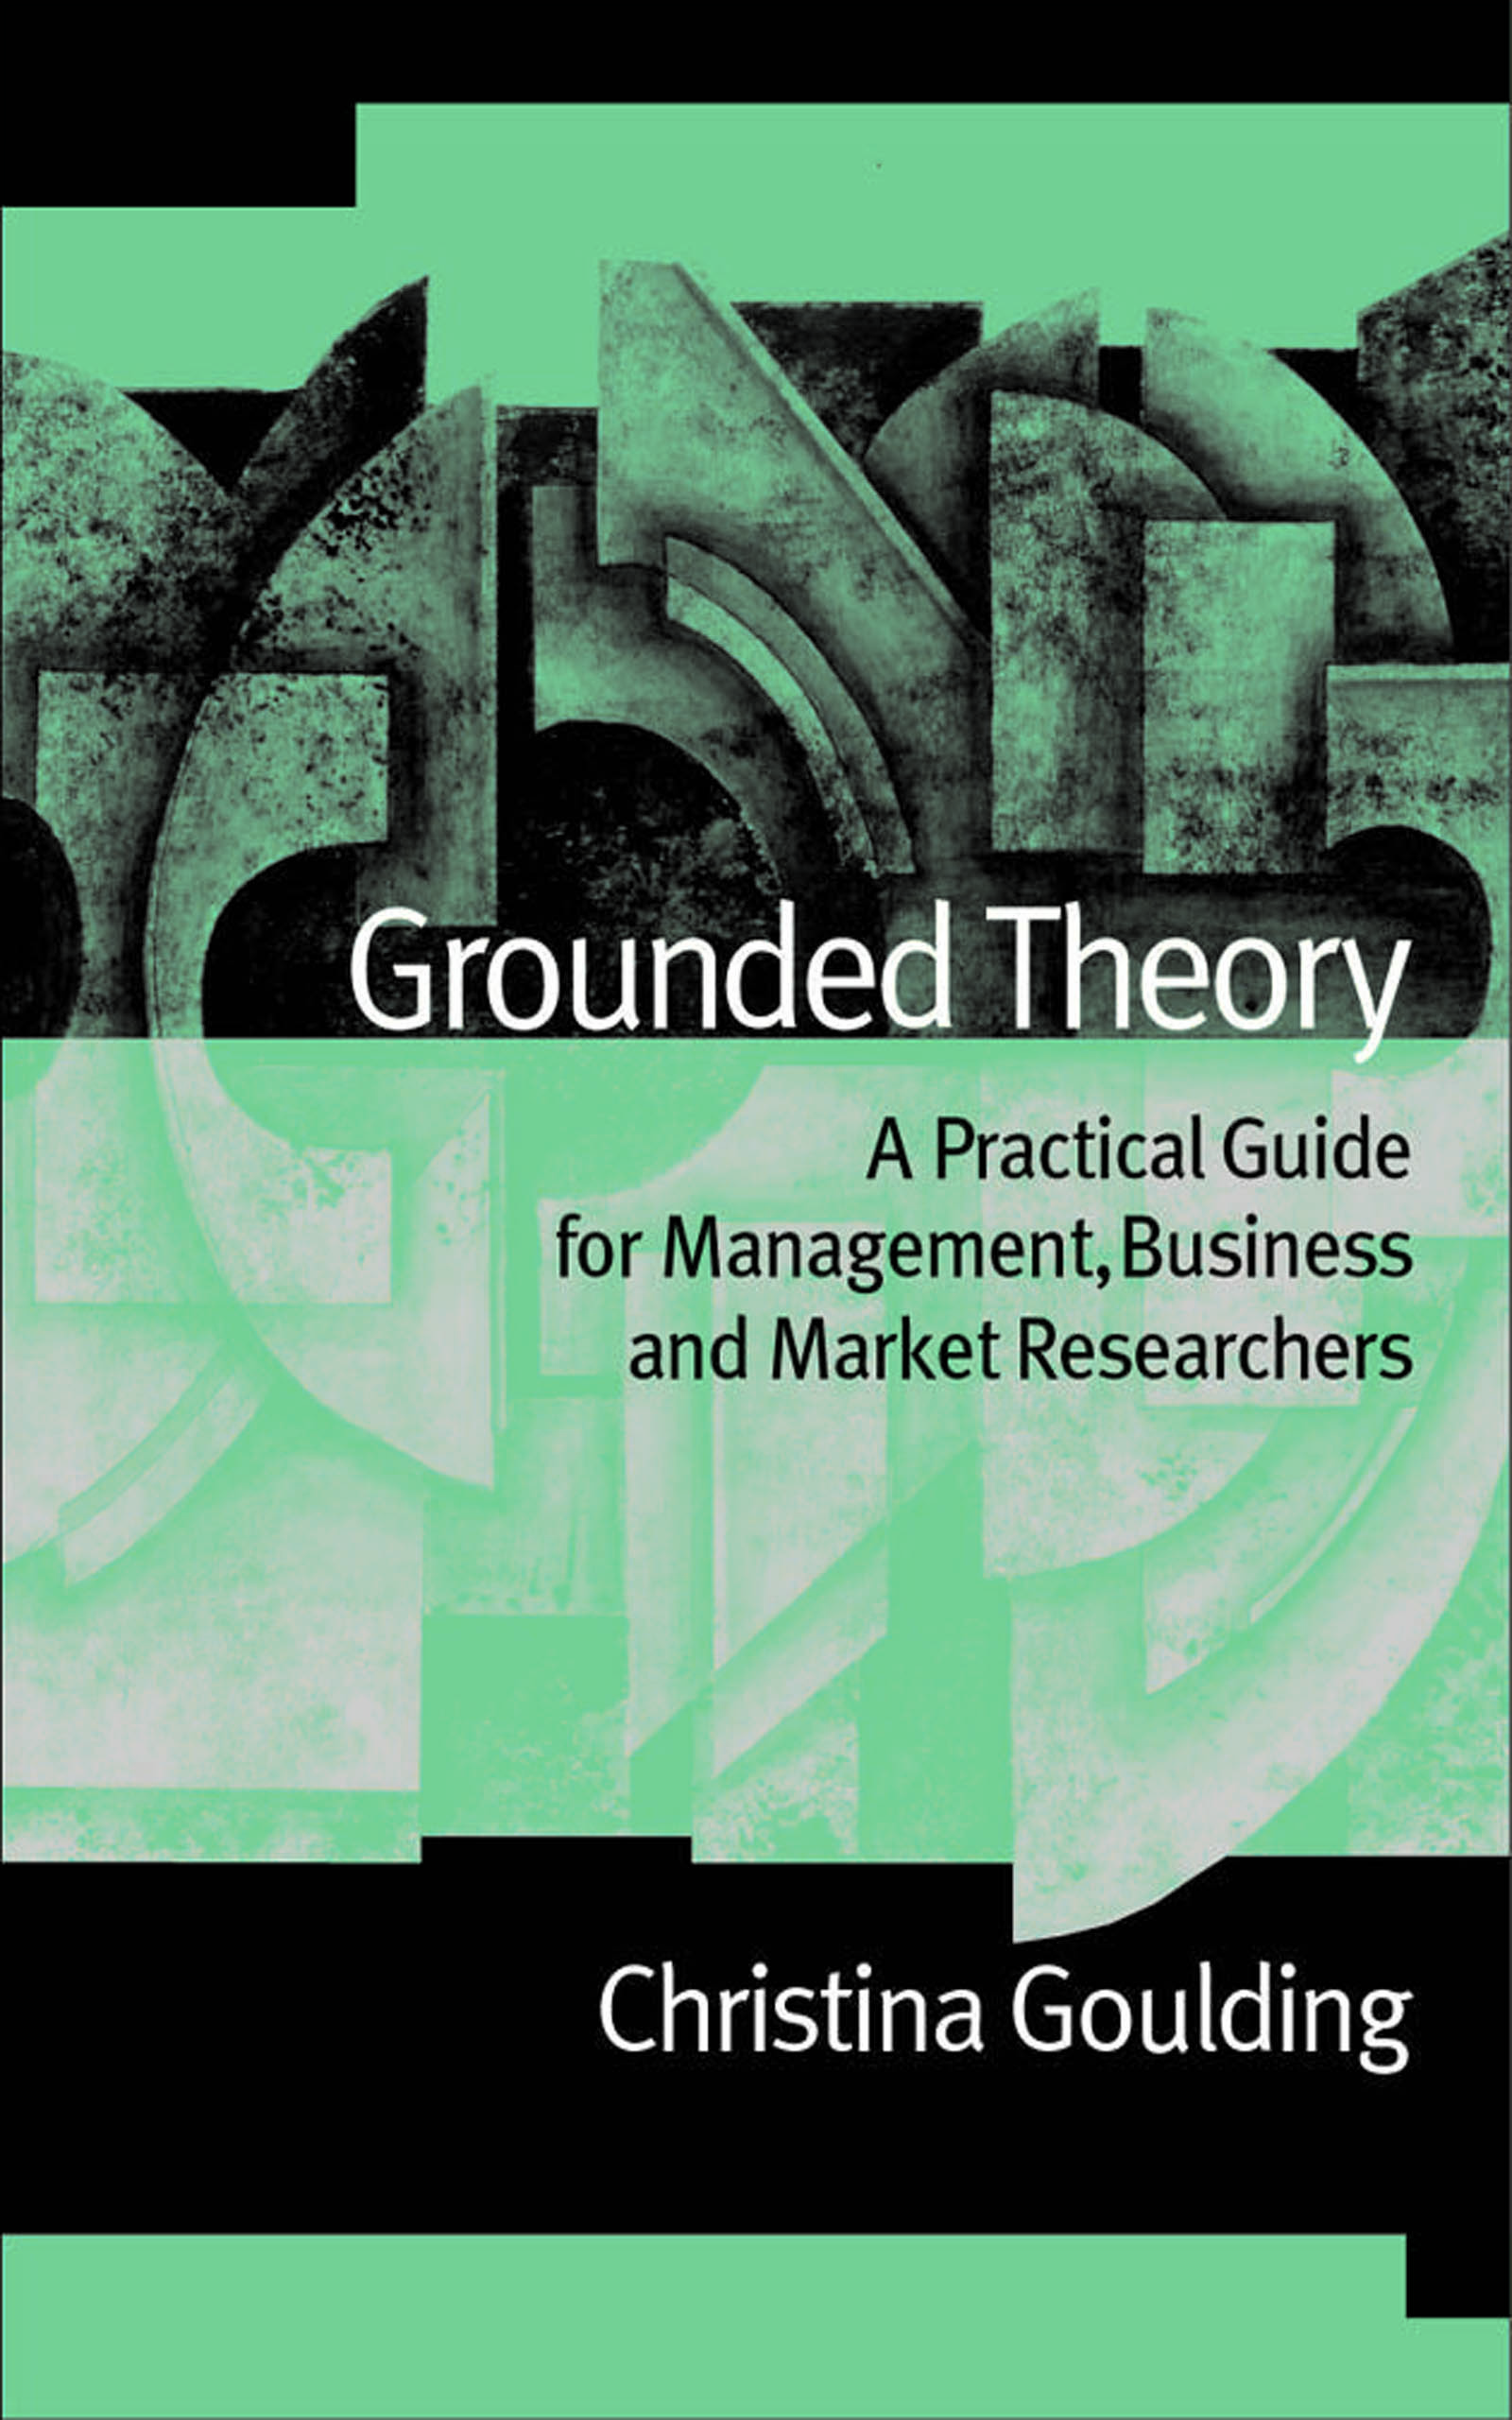 Download Ebook Grounded Theory by Christina Goulding Pdf